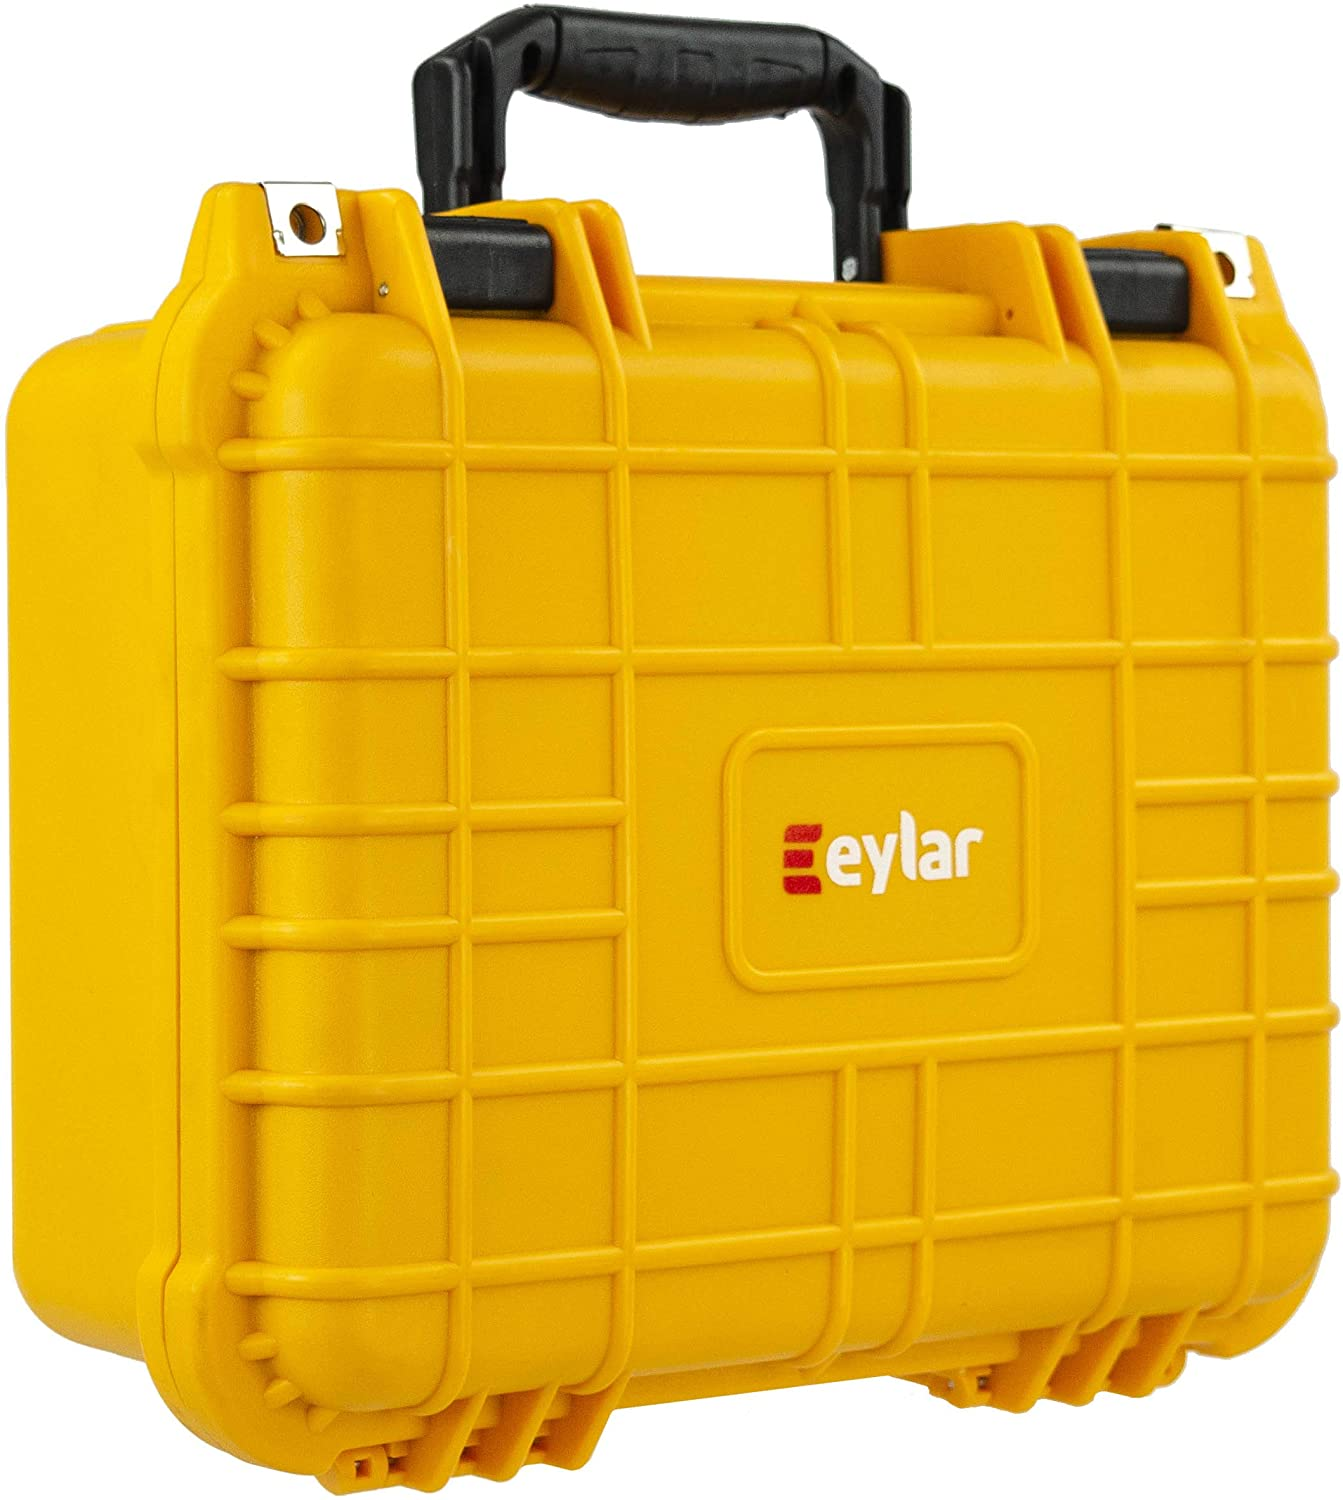 Eylar Protective Hard Case Water & Shock Proof w/Foam TSA Approved 13.37 inch 11.62 inch 6 inch Yellow